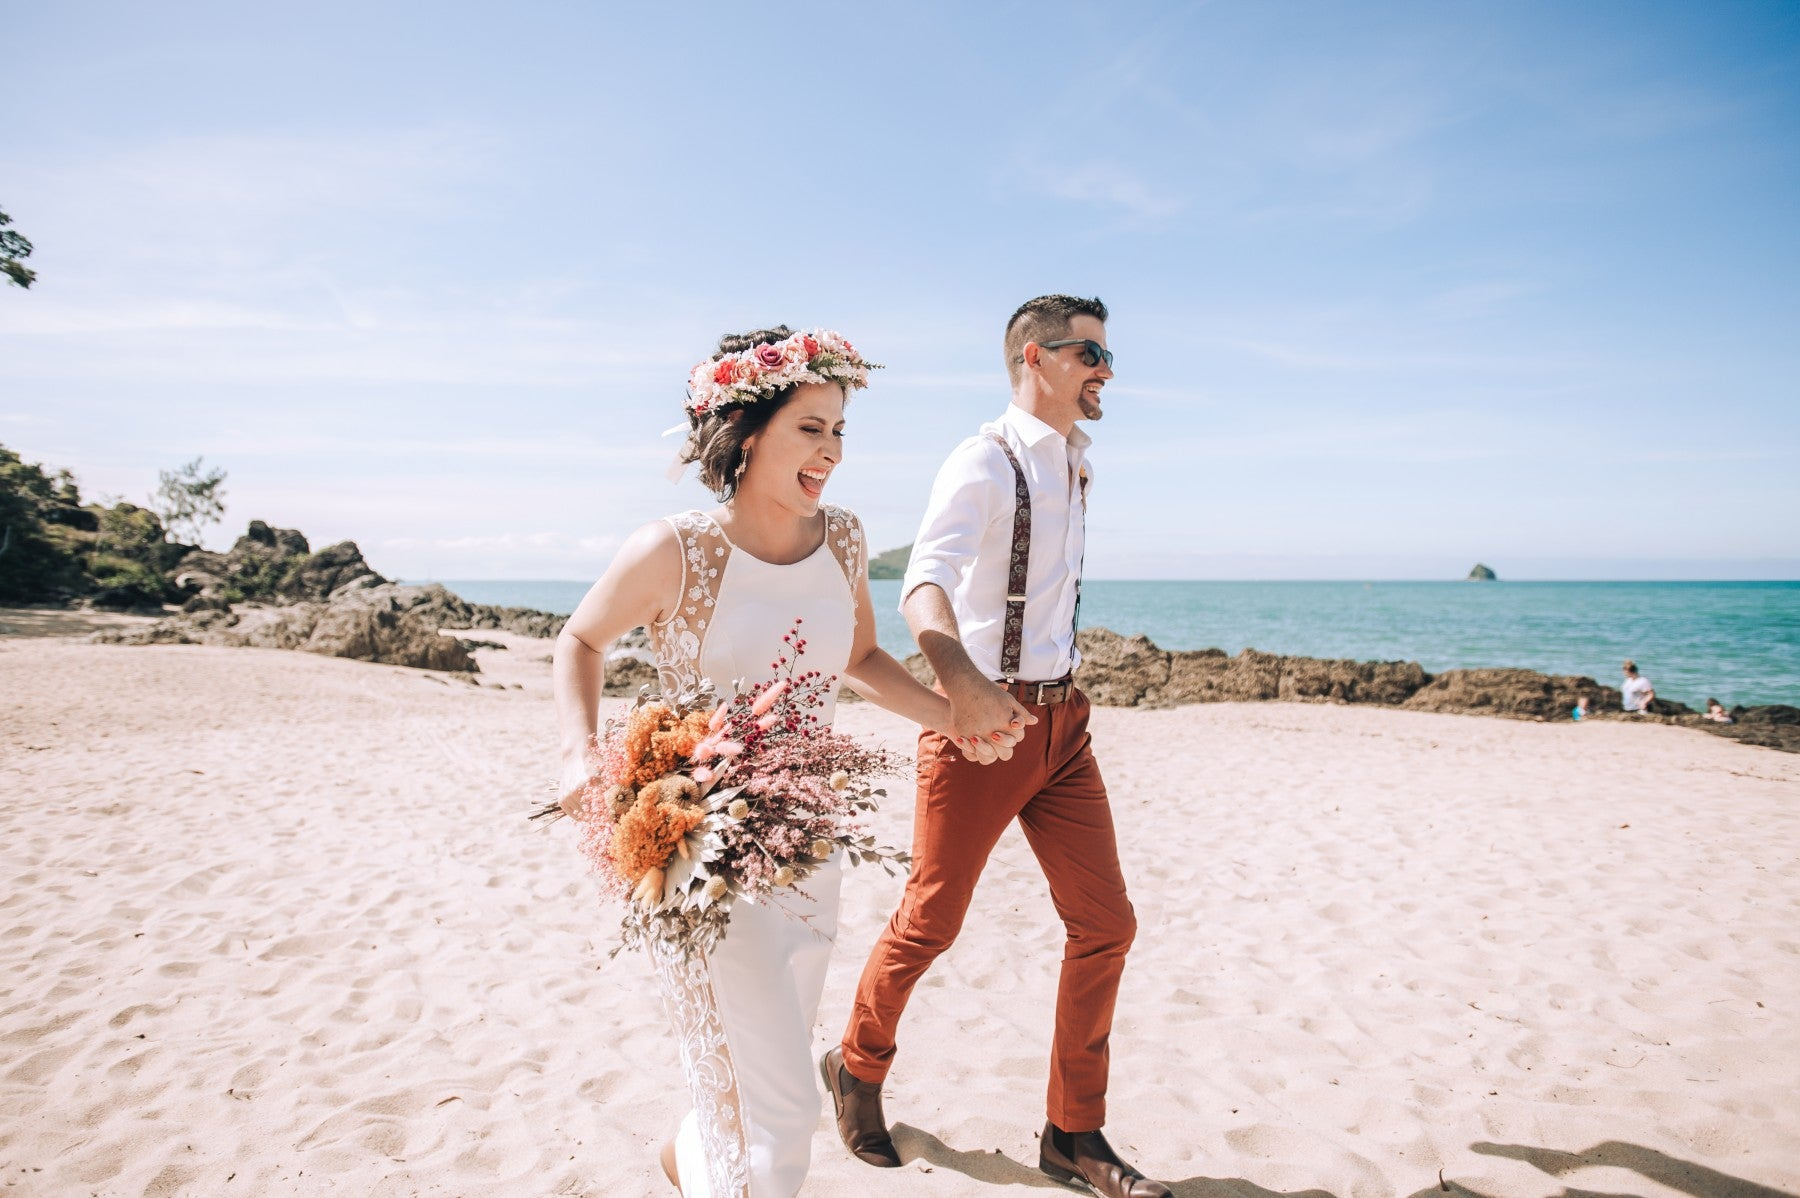 Couple is having fun at their wedding day